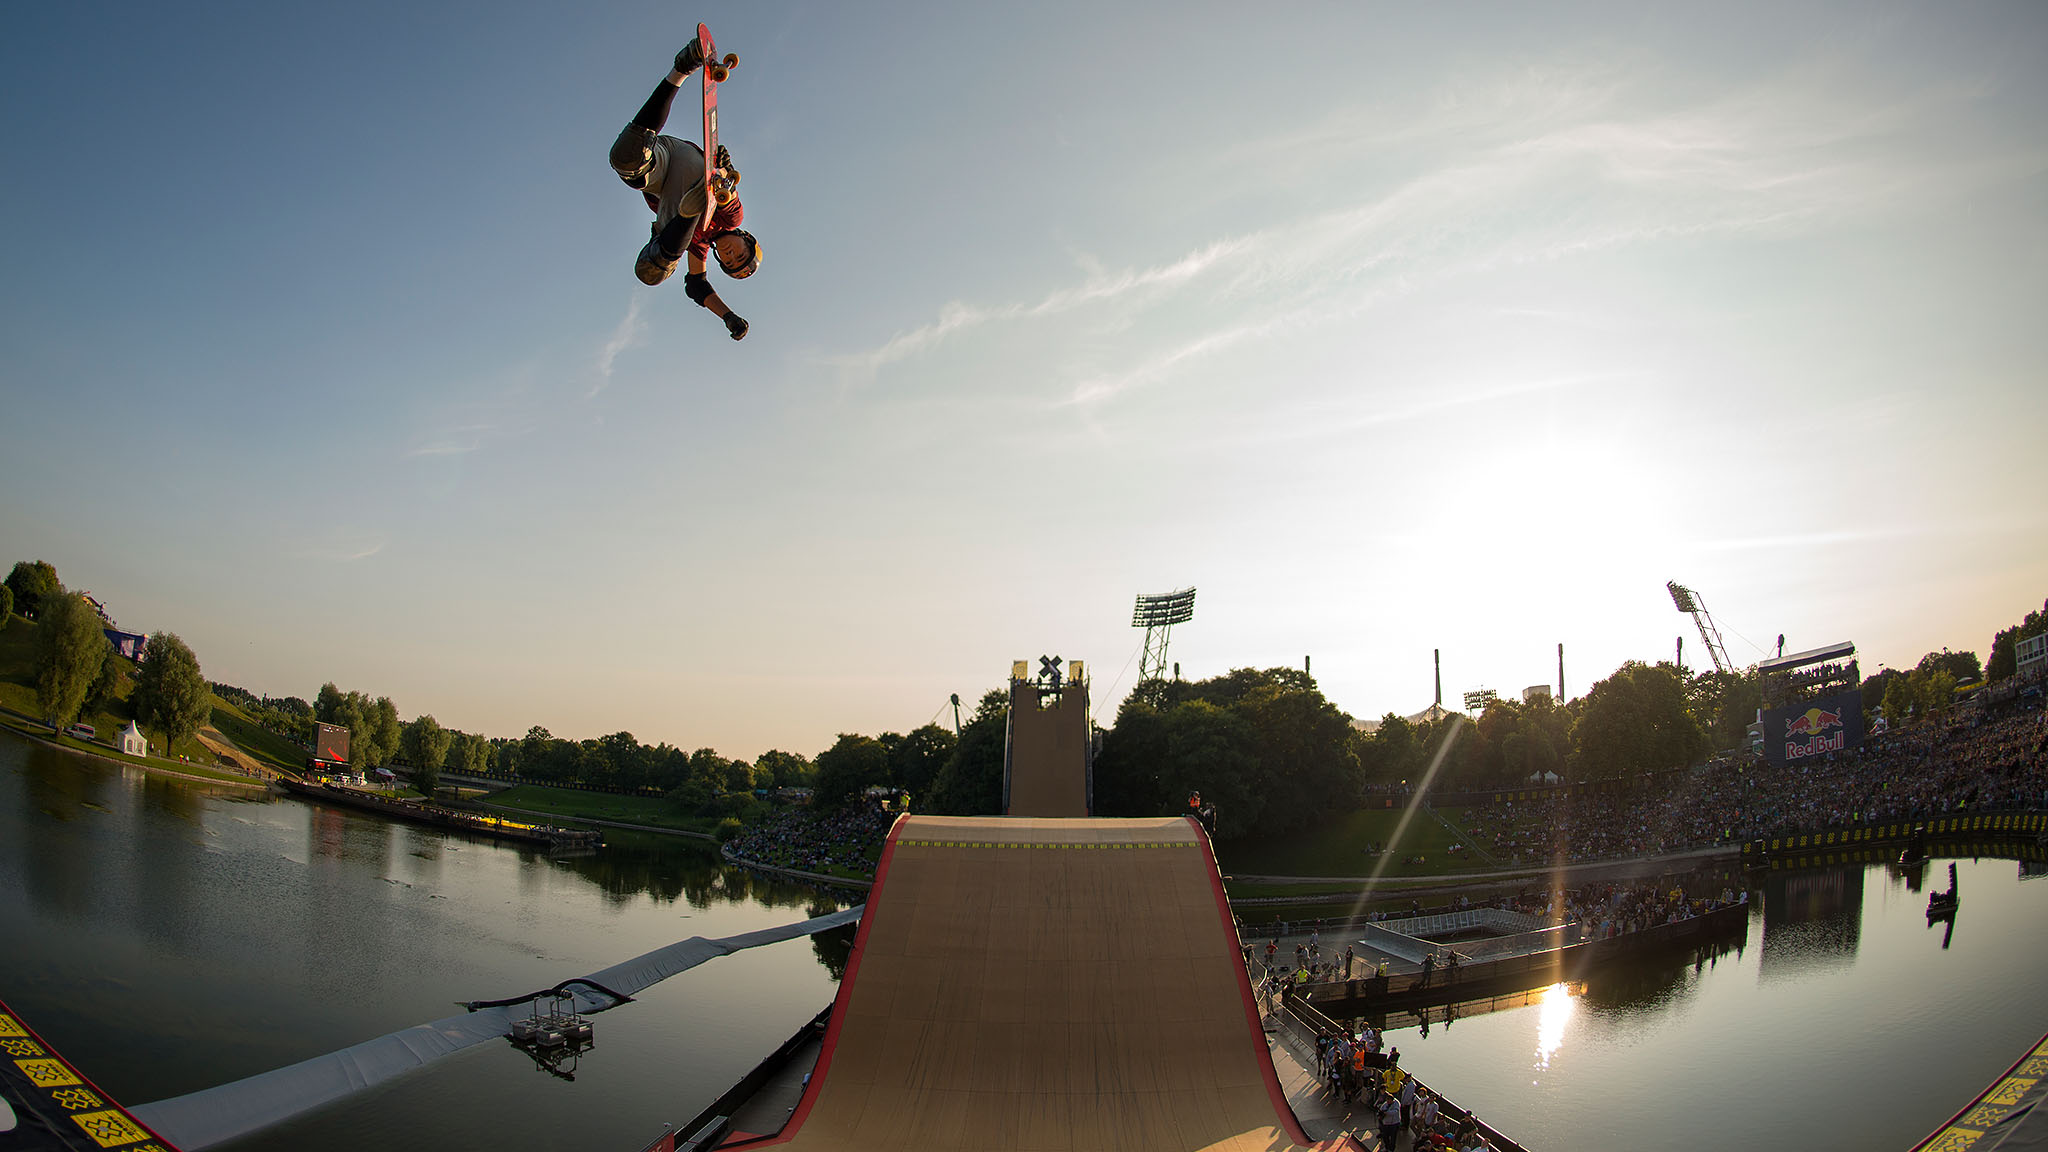 Alex Sorgente blasts a sky-high method air during X Games Munich Skateboard Big Air Sunday.